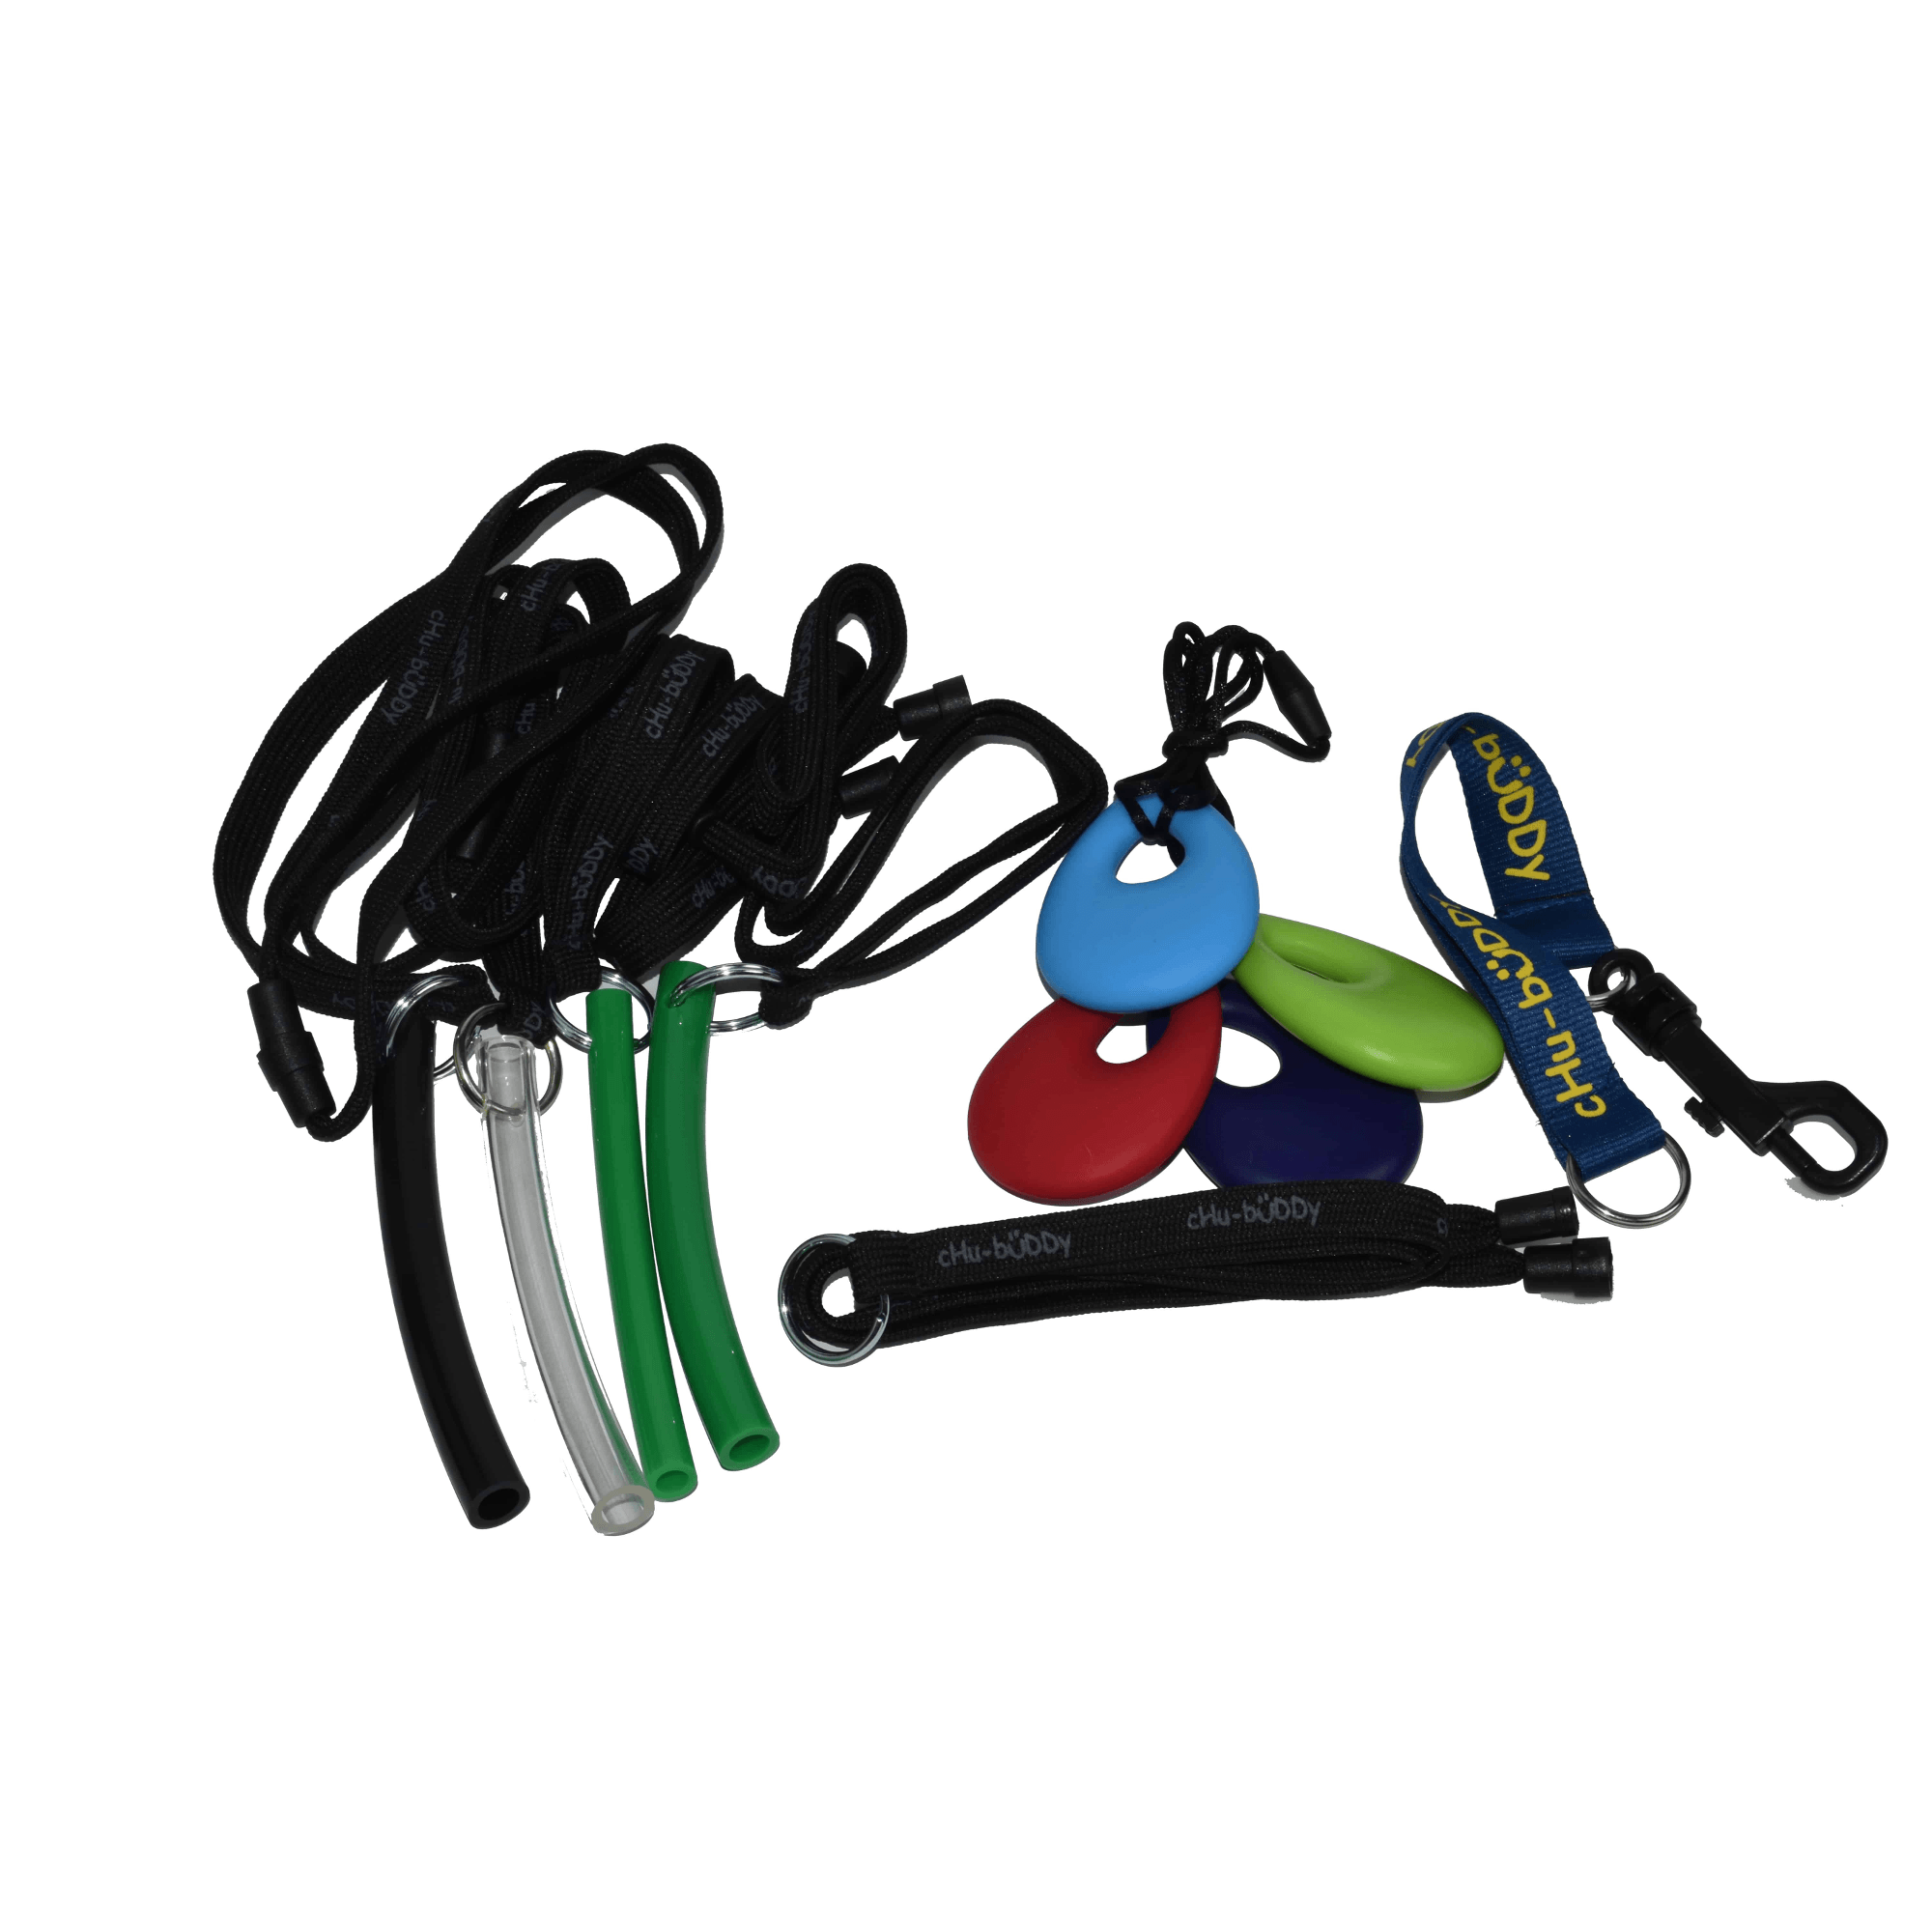 Factory Seconds chew holder clip on- random colors, shoulder or neck lanyard- Orig $6.99 to $7.99